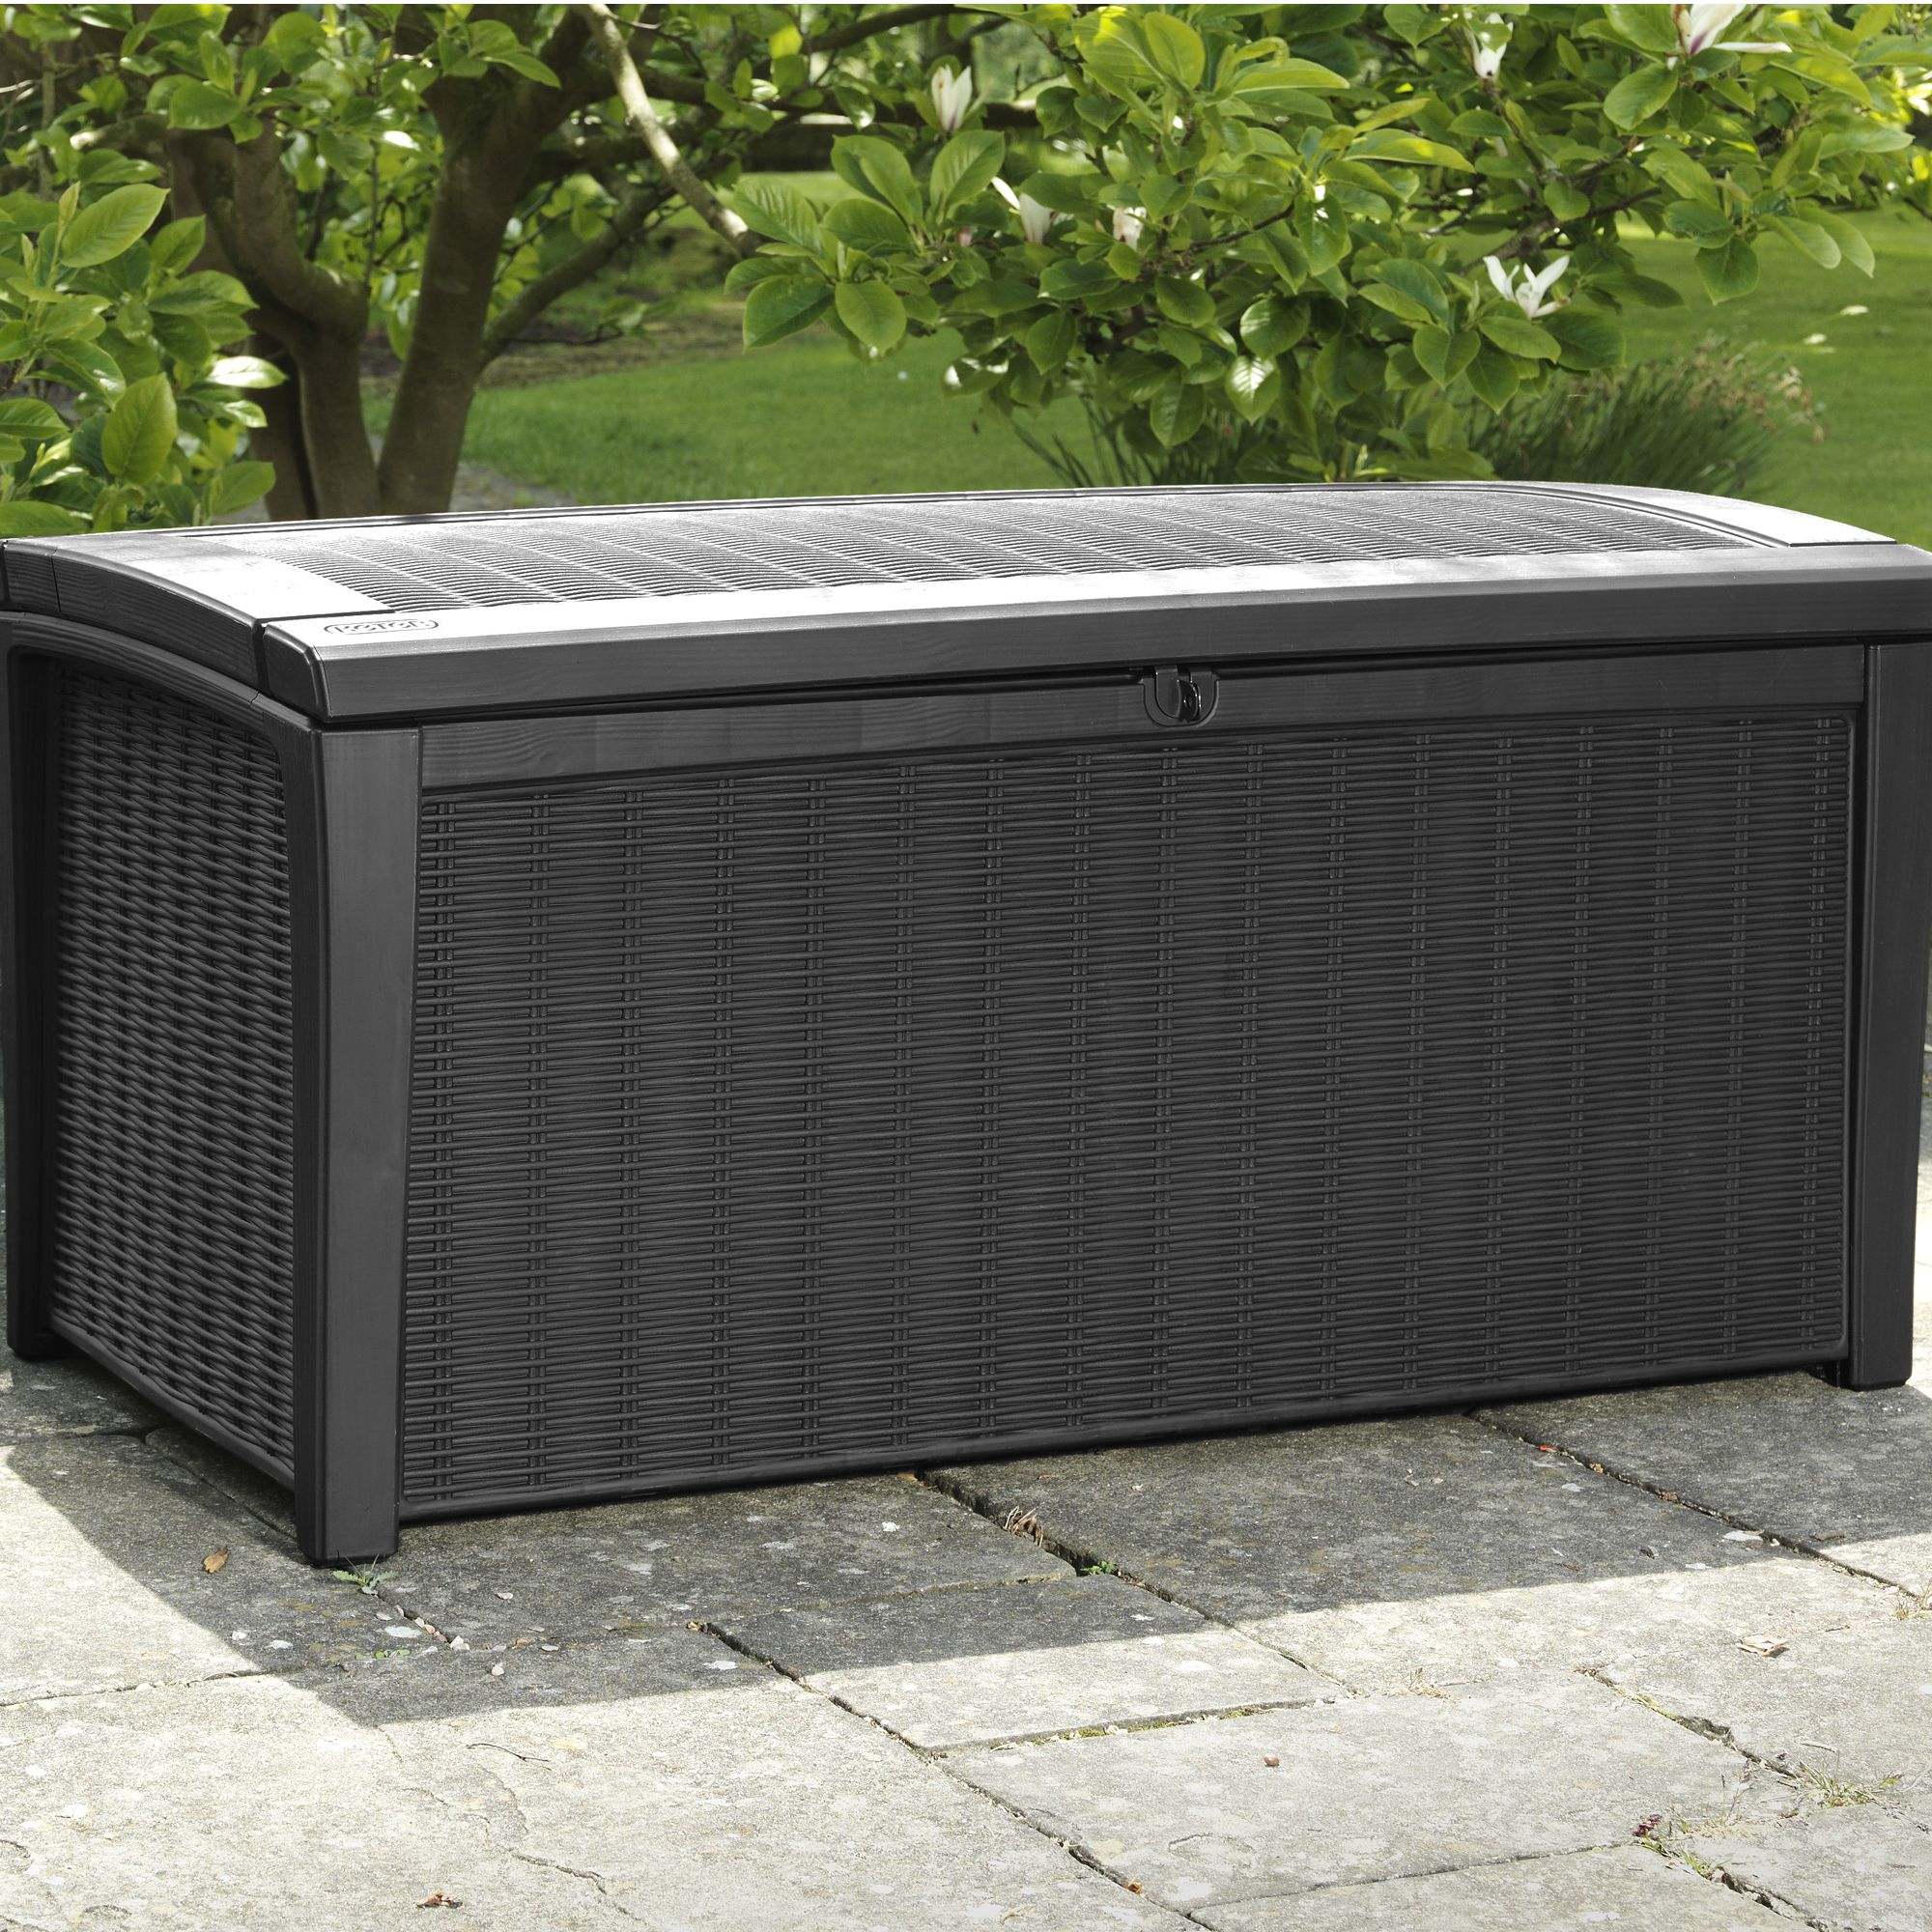 Borneo Rattan effect Plastic Garden storage box | Departments | DIY at Bu0026Q & Borneo Rattan effect Plastic Garden storage box | Departments | DIY ...